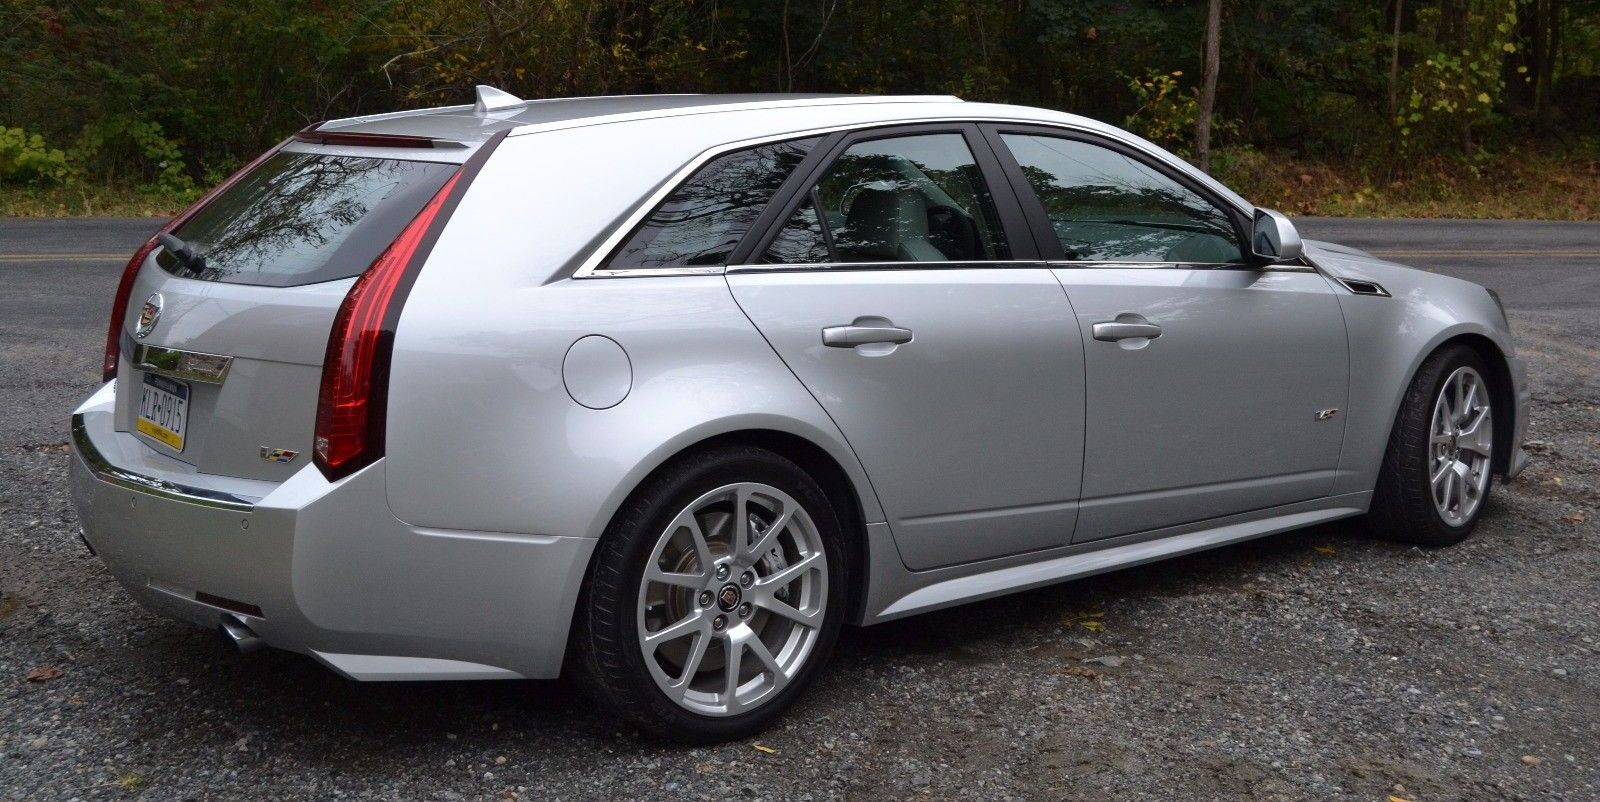 Cadillac Cts V Wagon For Sale >> You Must Buy This Manual Cadillac Cts V Wagon